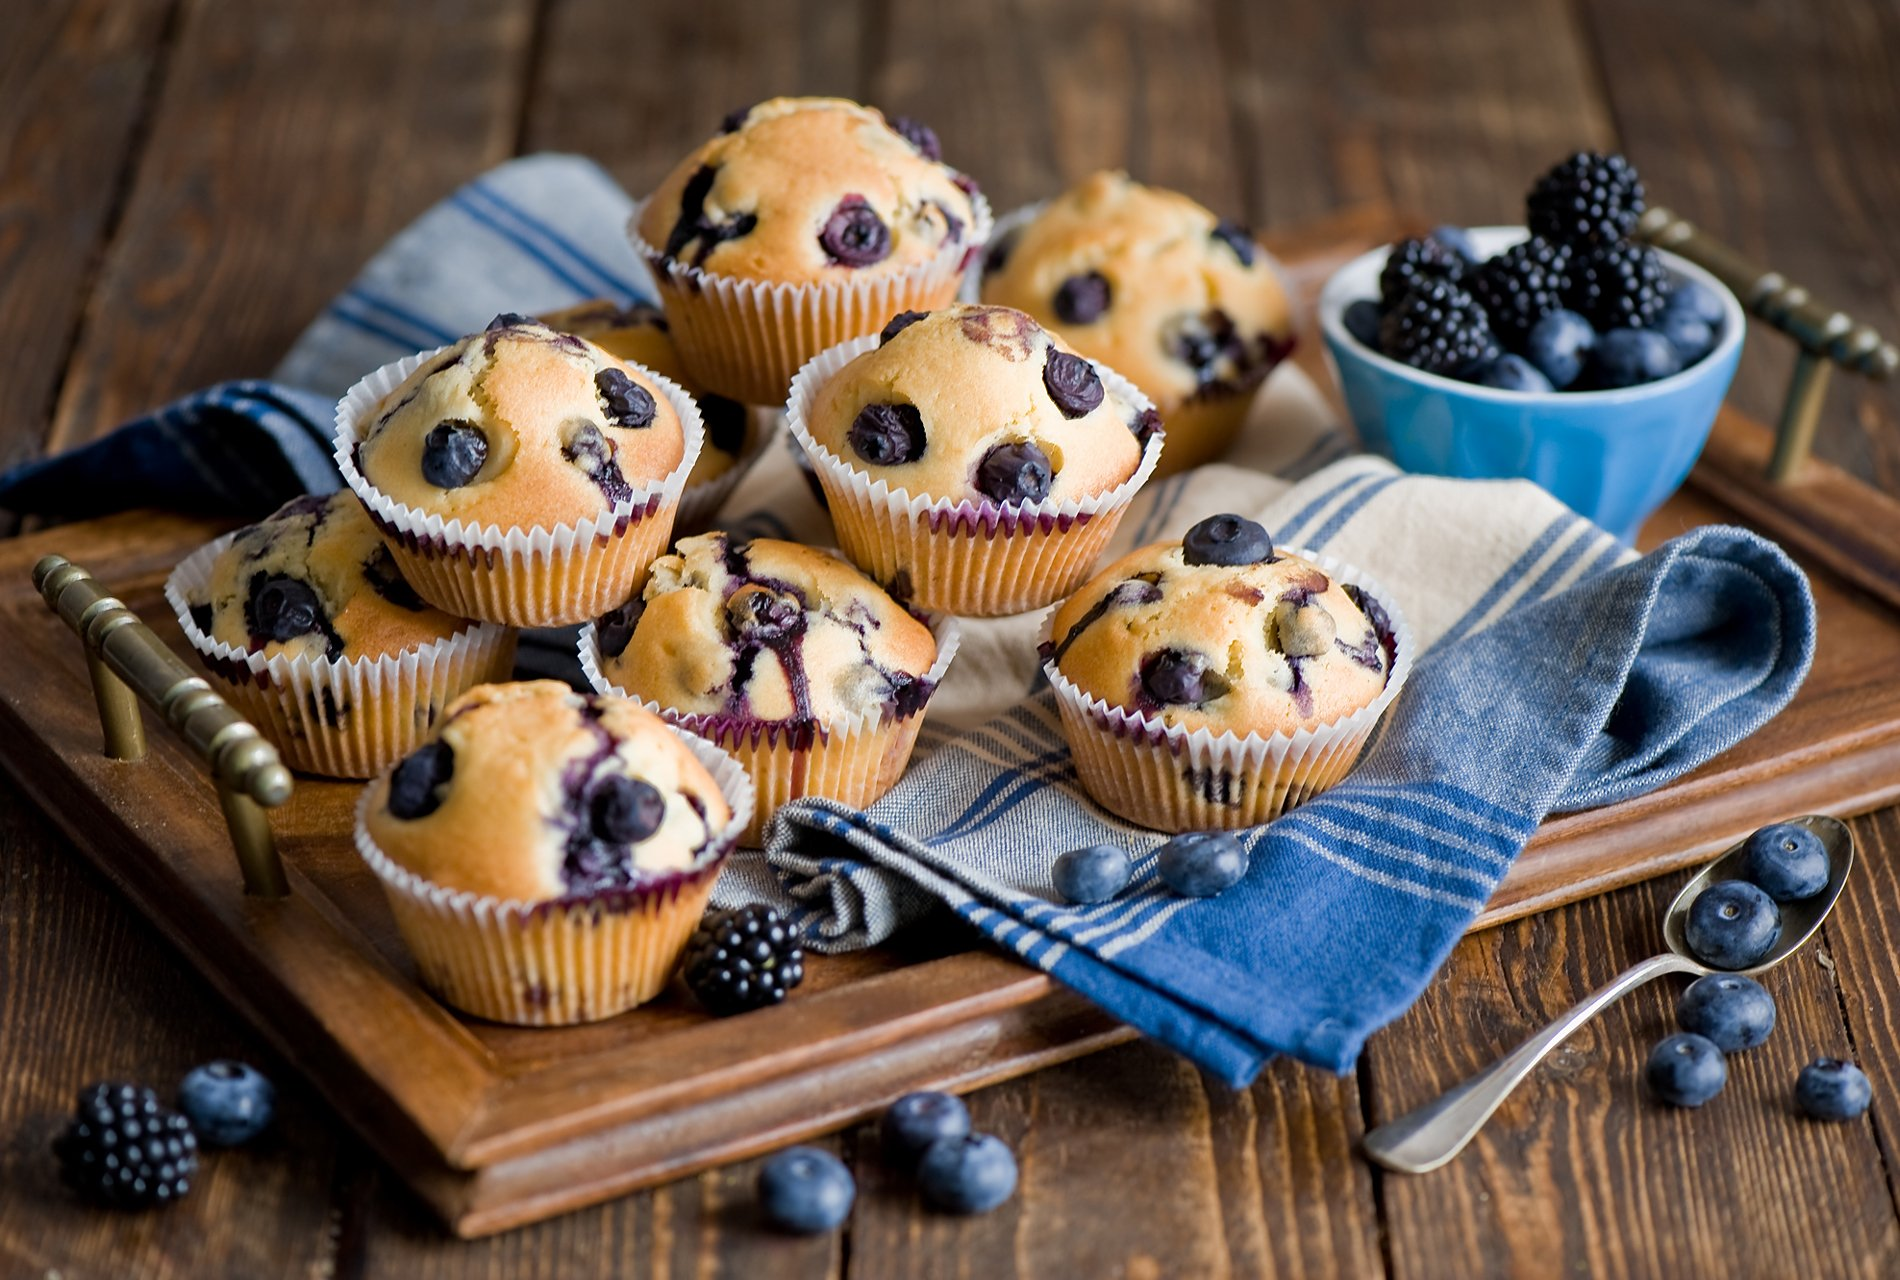 Know About Some Of The Best Types Of Pastries